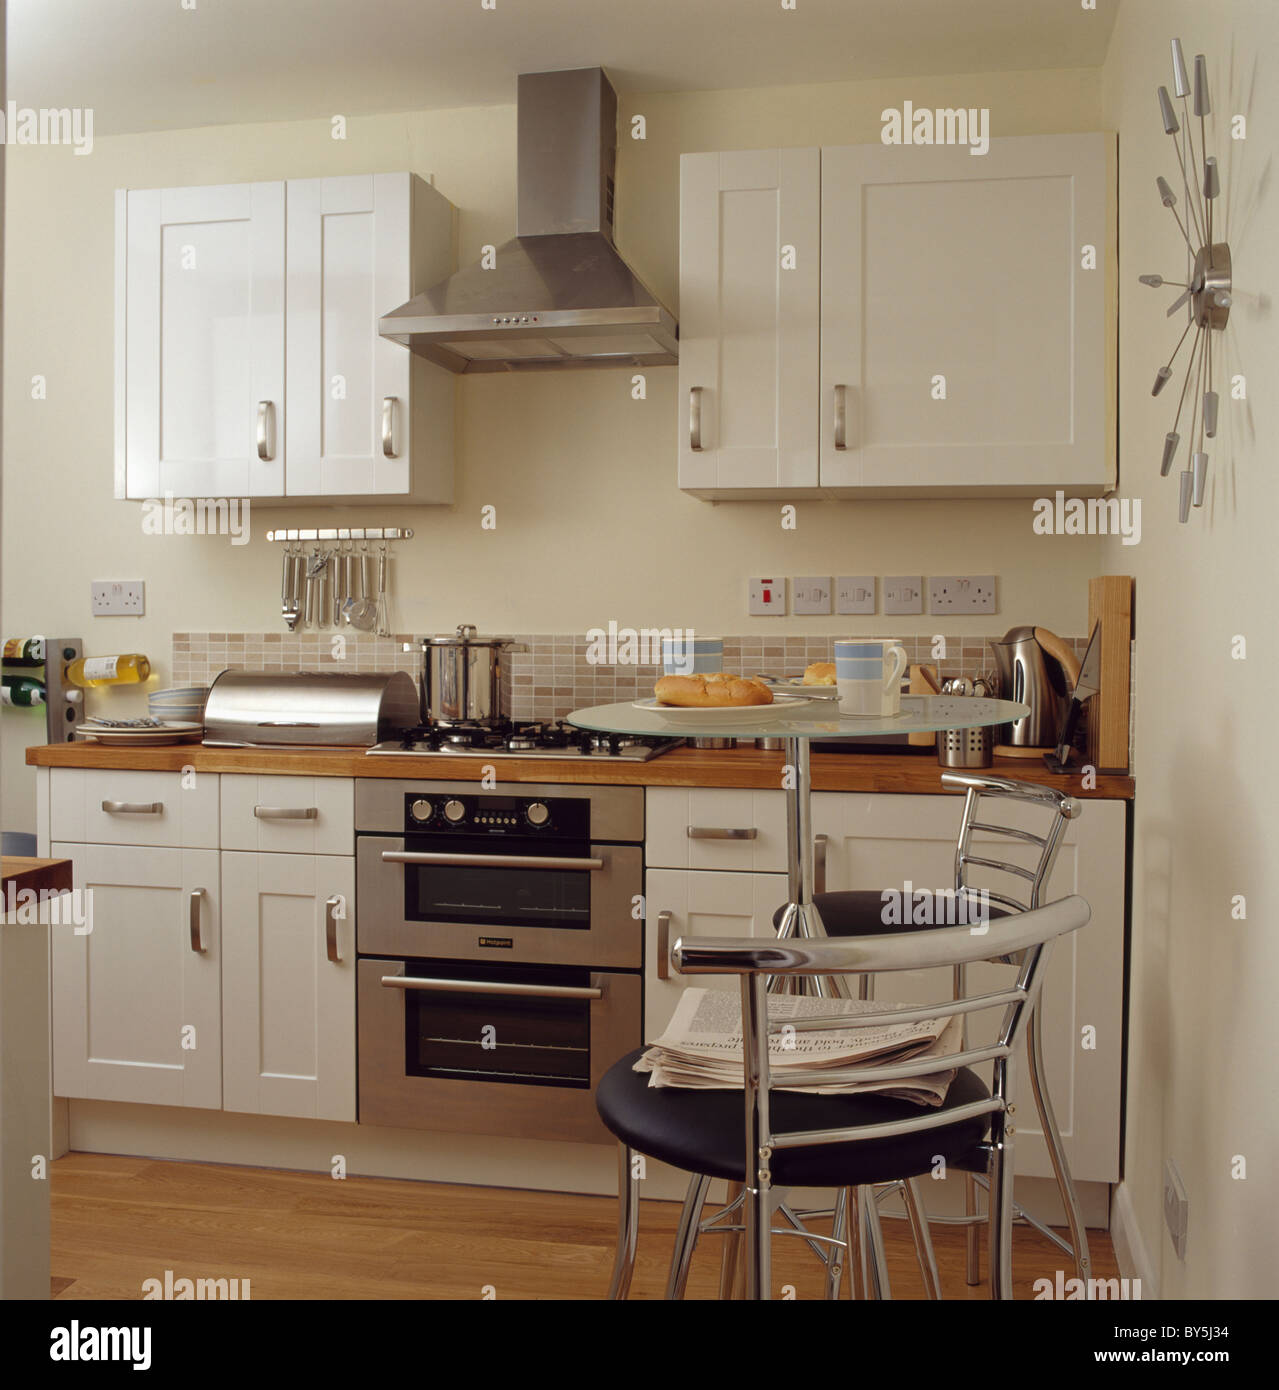 Fitted Kitchens Stockfotos & Fitted Kitchens Bilder - Seite 15 - Alamy